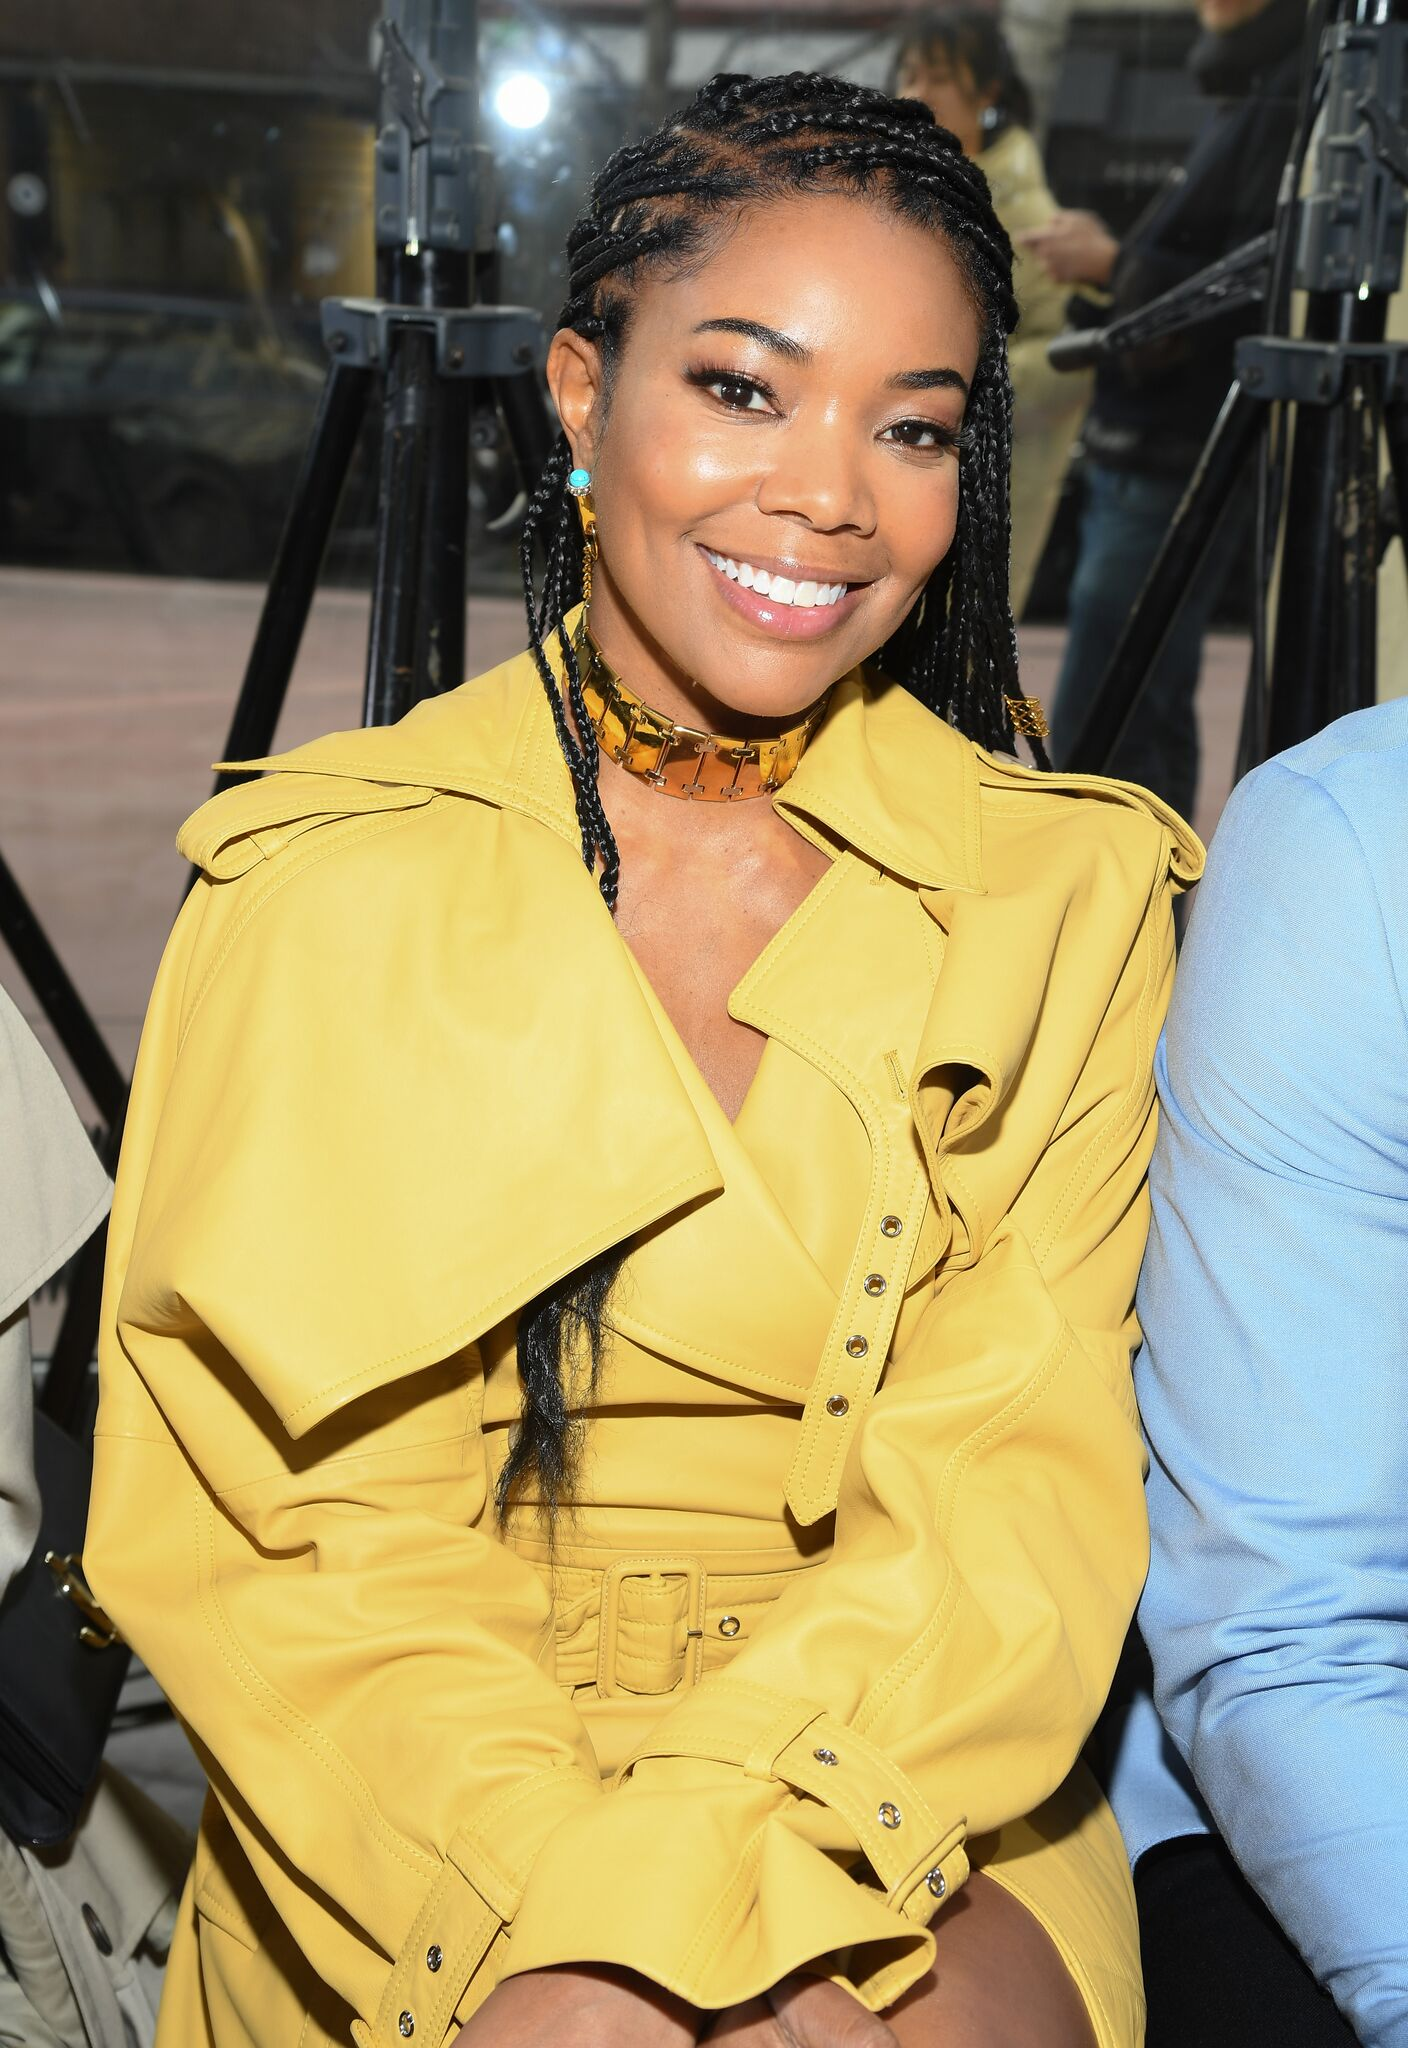 Gabrielle Union attends the Lanvin Menswear Fall/Winter 2020-2021 show as part of Paris Fashion Week on January 19, 2020 | Source: Getty Images/GlobalImagesUkraine